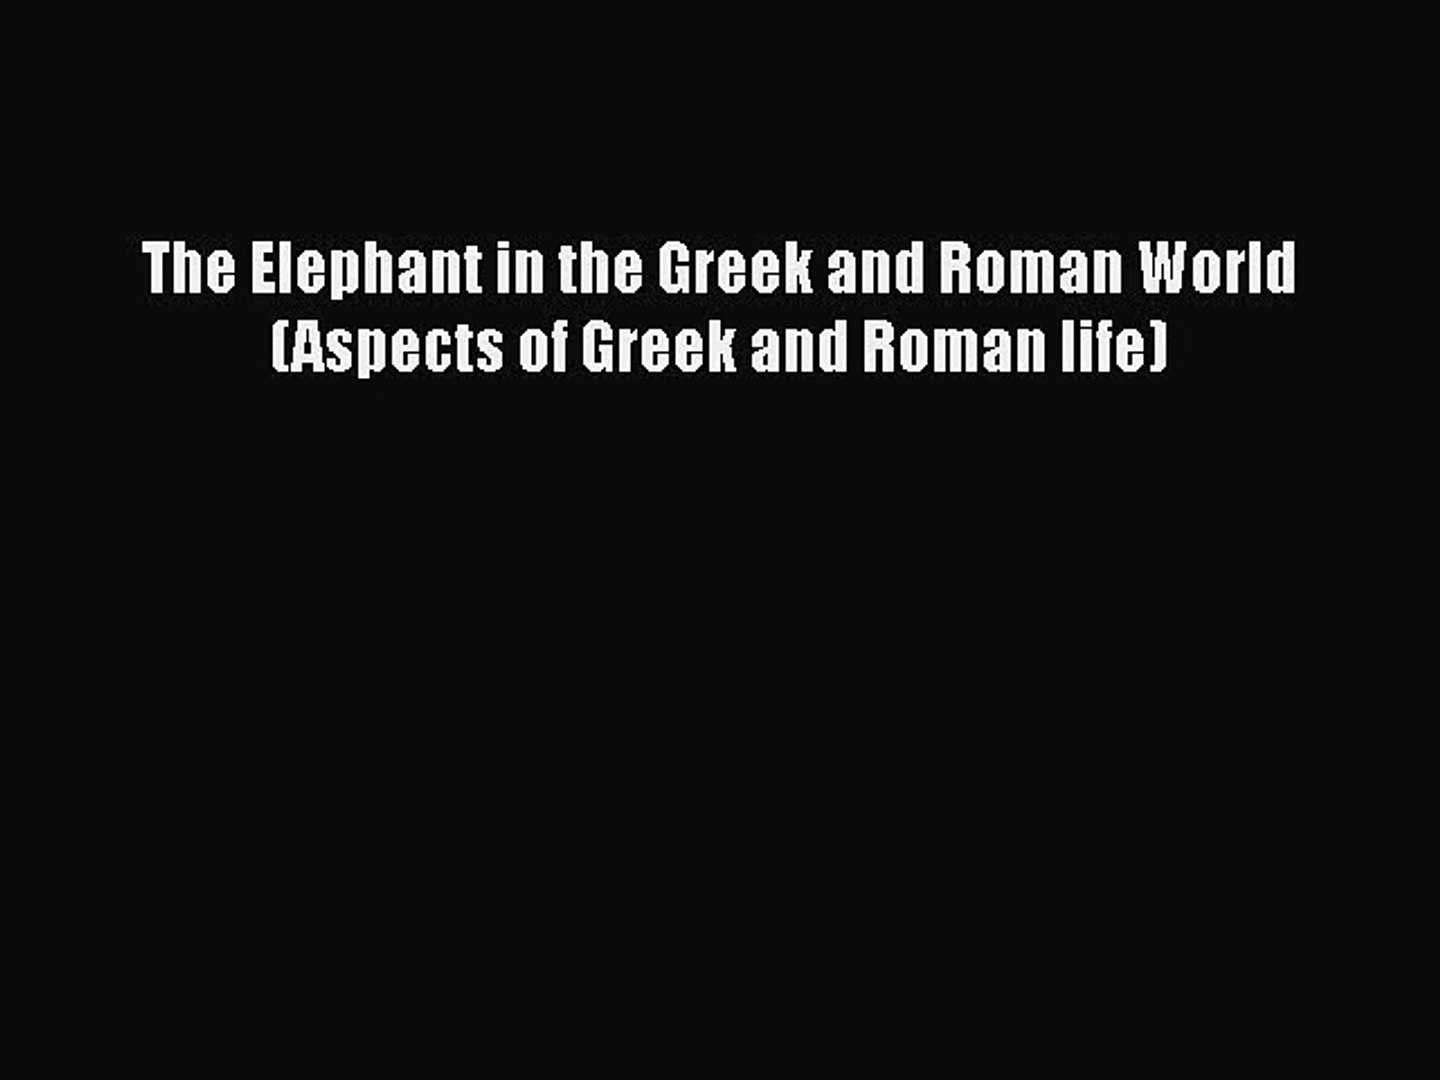 Download The Elephant in the Greek and Roman World (Aspects of Greek and Roman life)  EBook